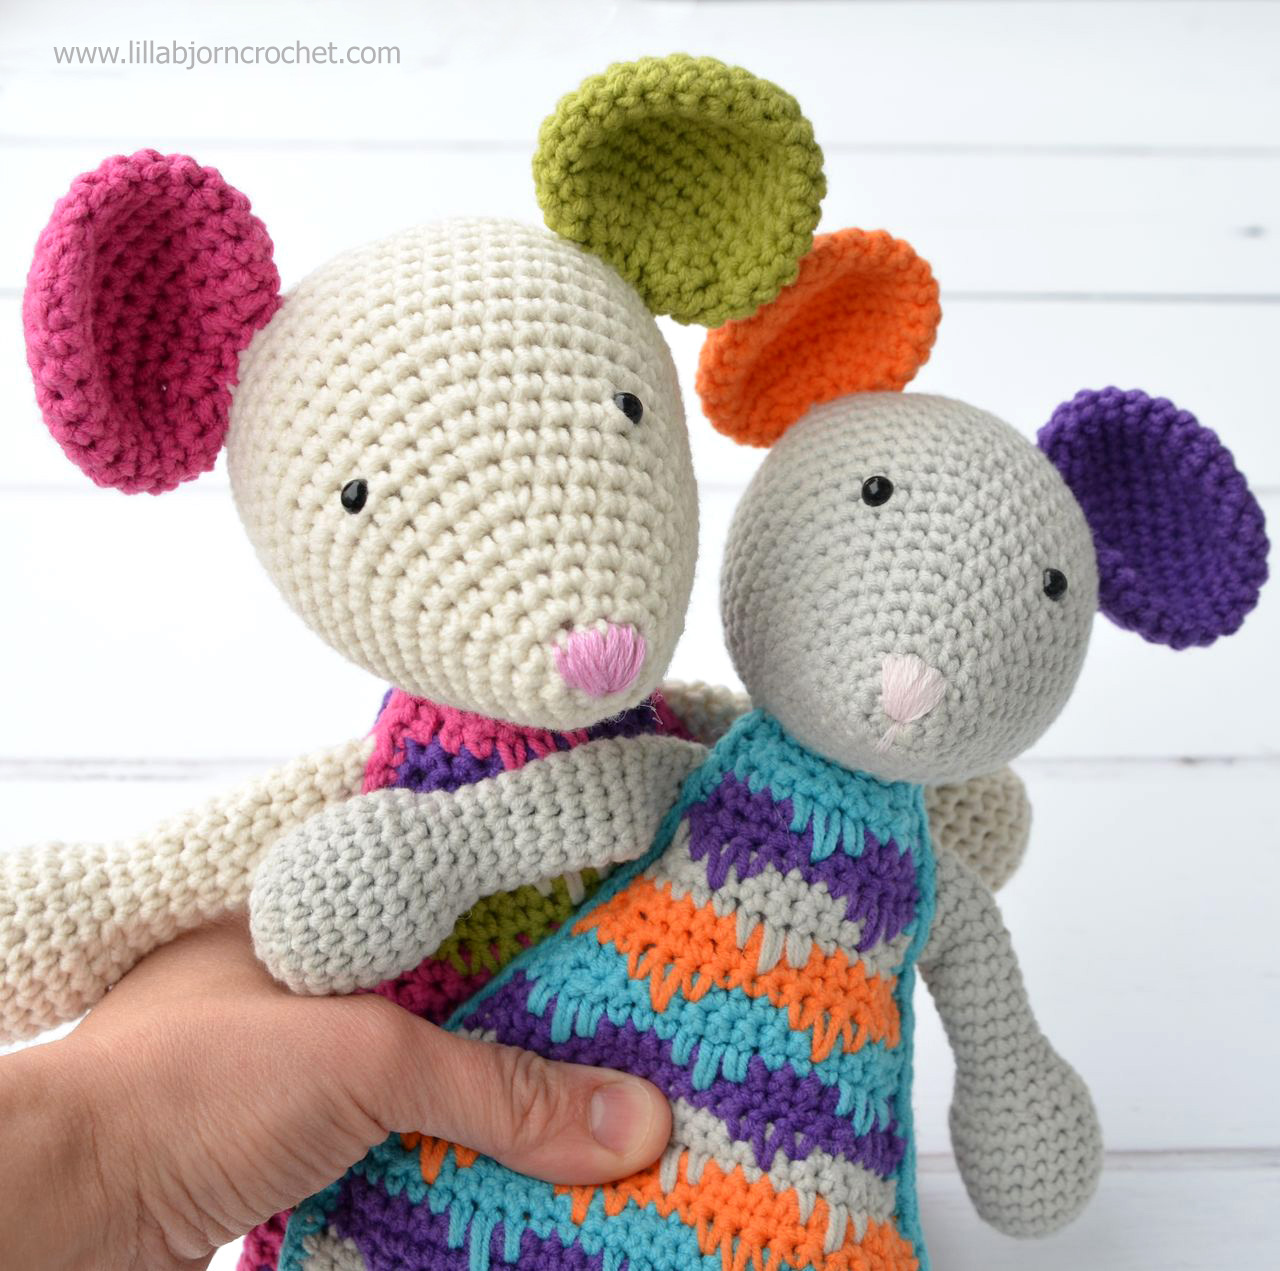 Let me introduce: Lisa the Mouse (new crochet amigurumi pattern ...